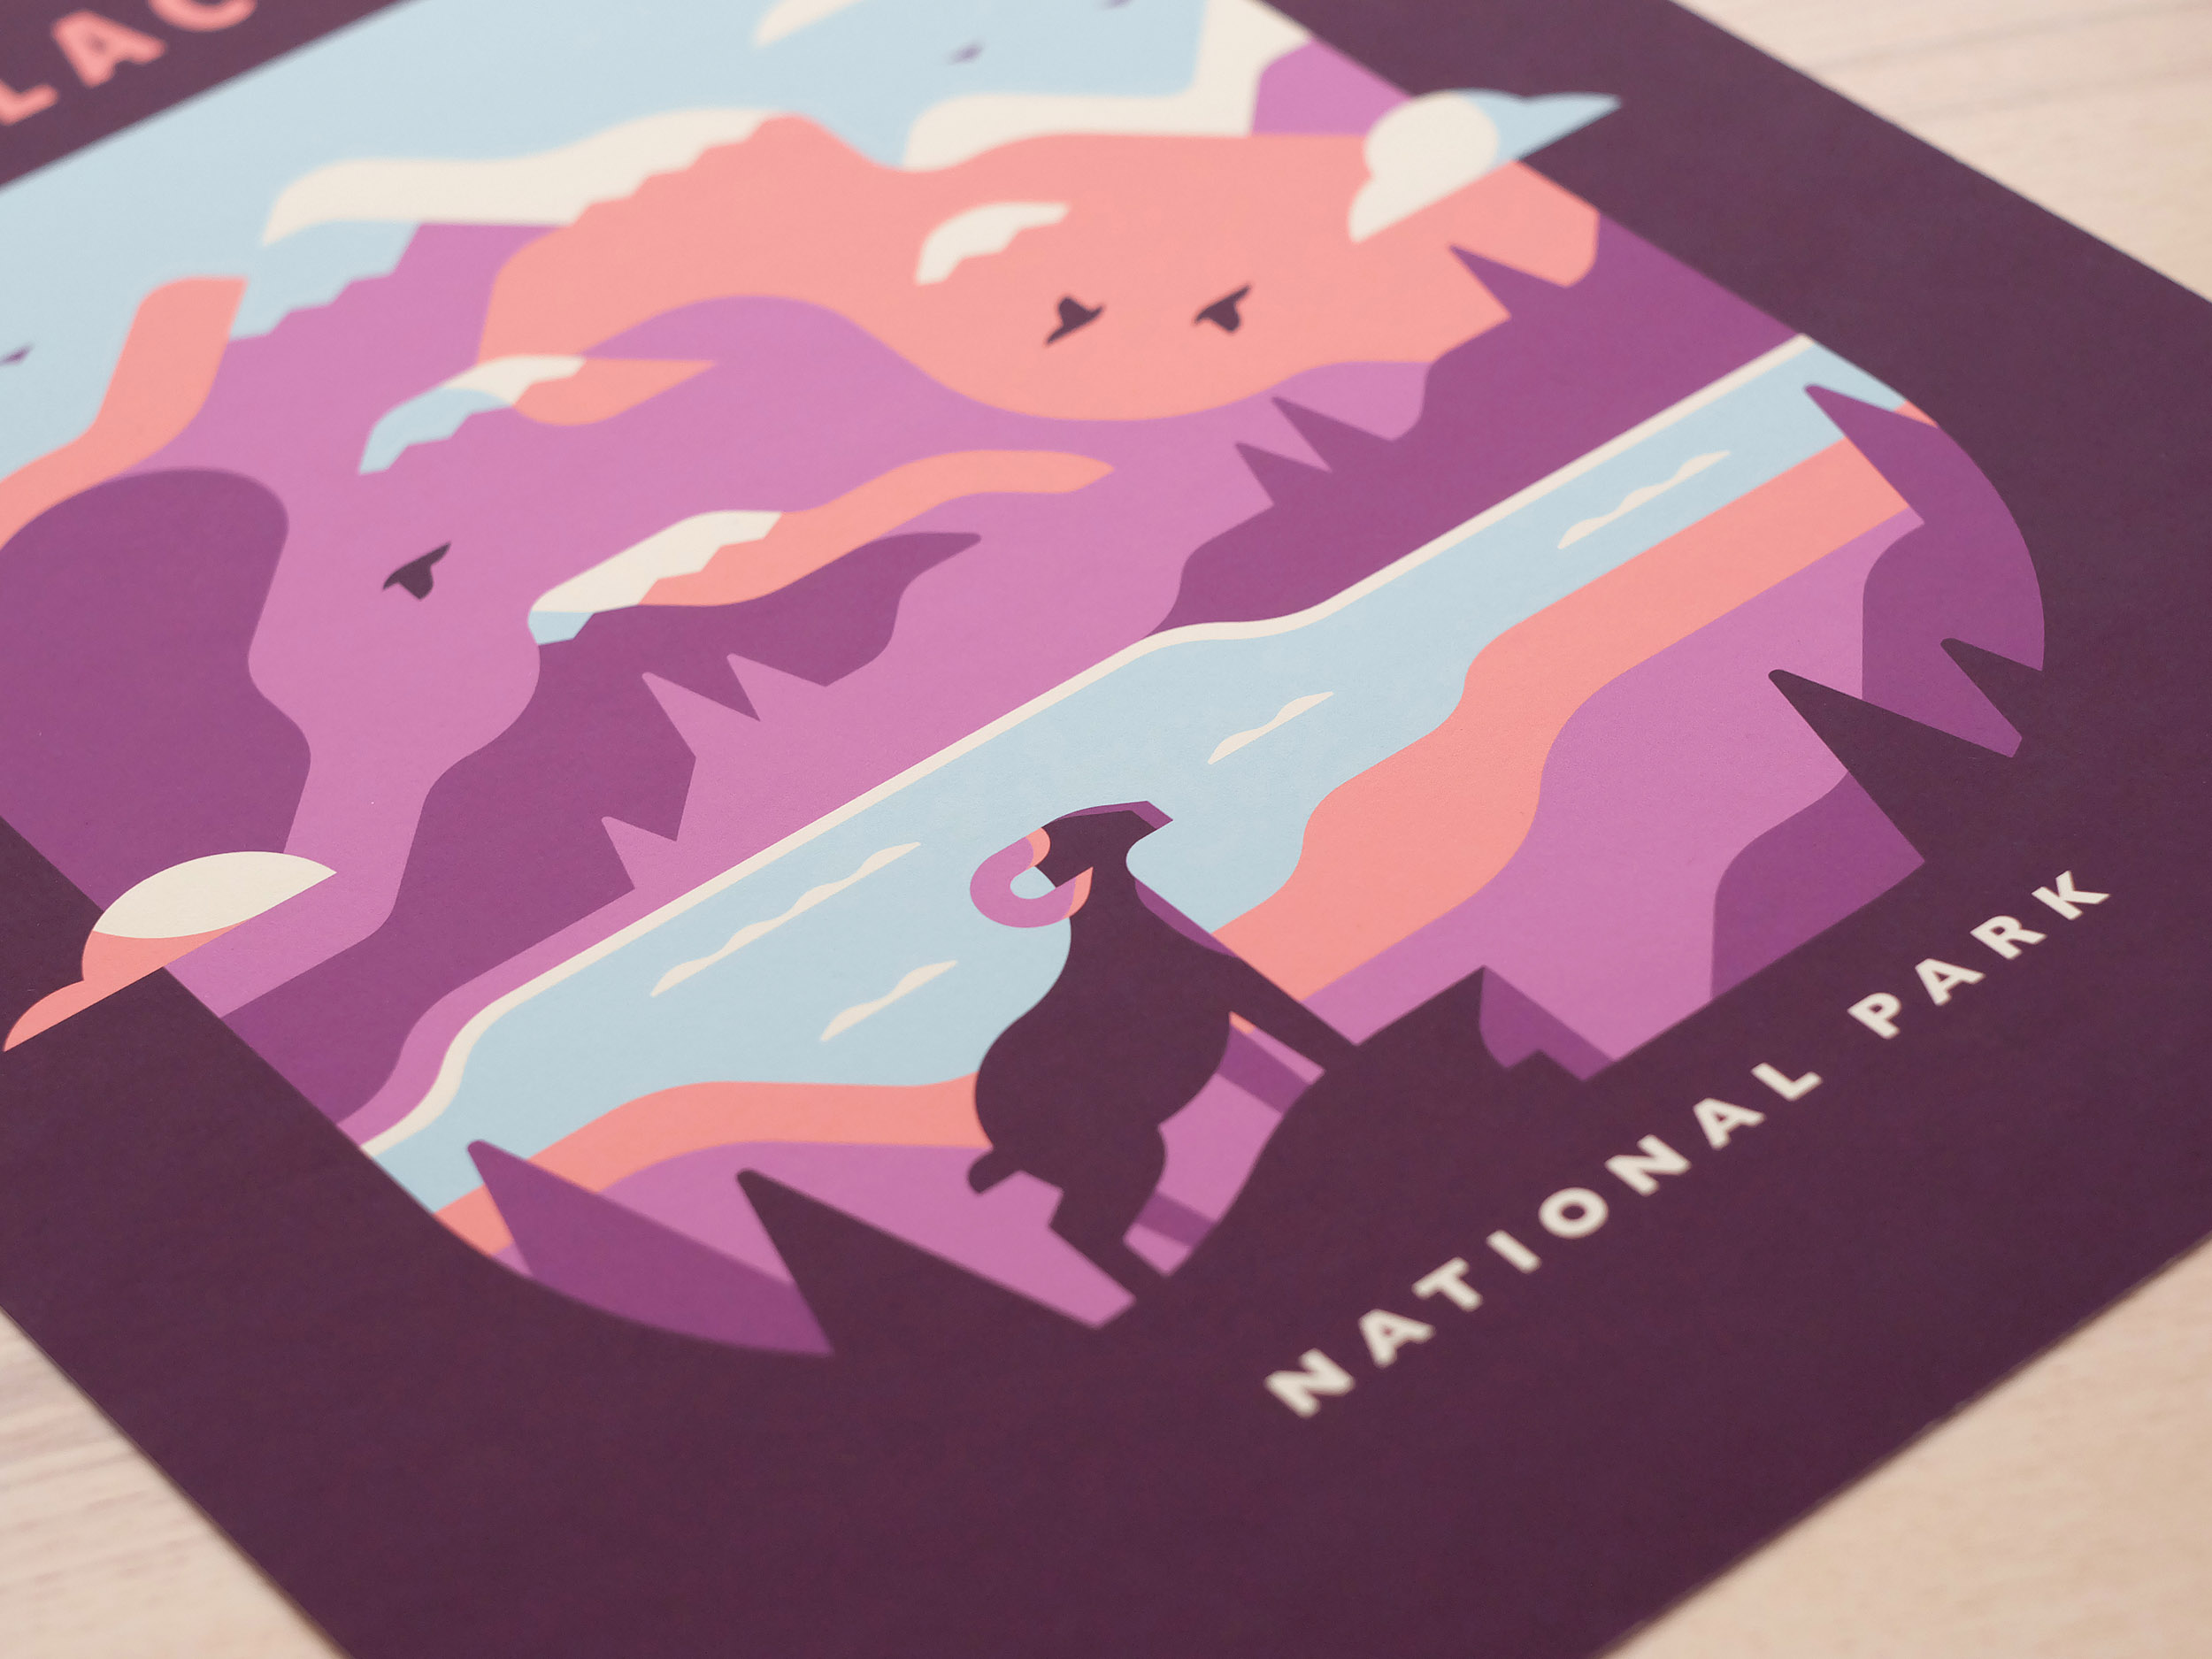 Glacier - National Parks prints and posters by Canopy Design and Illustration